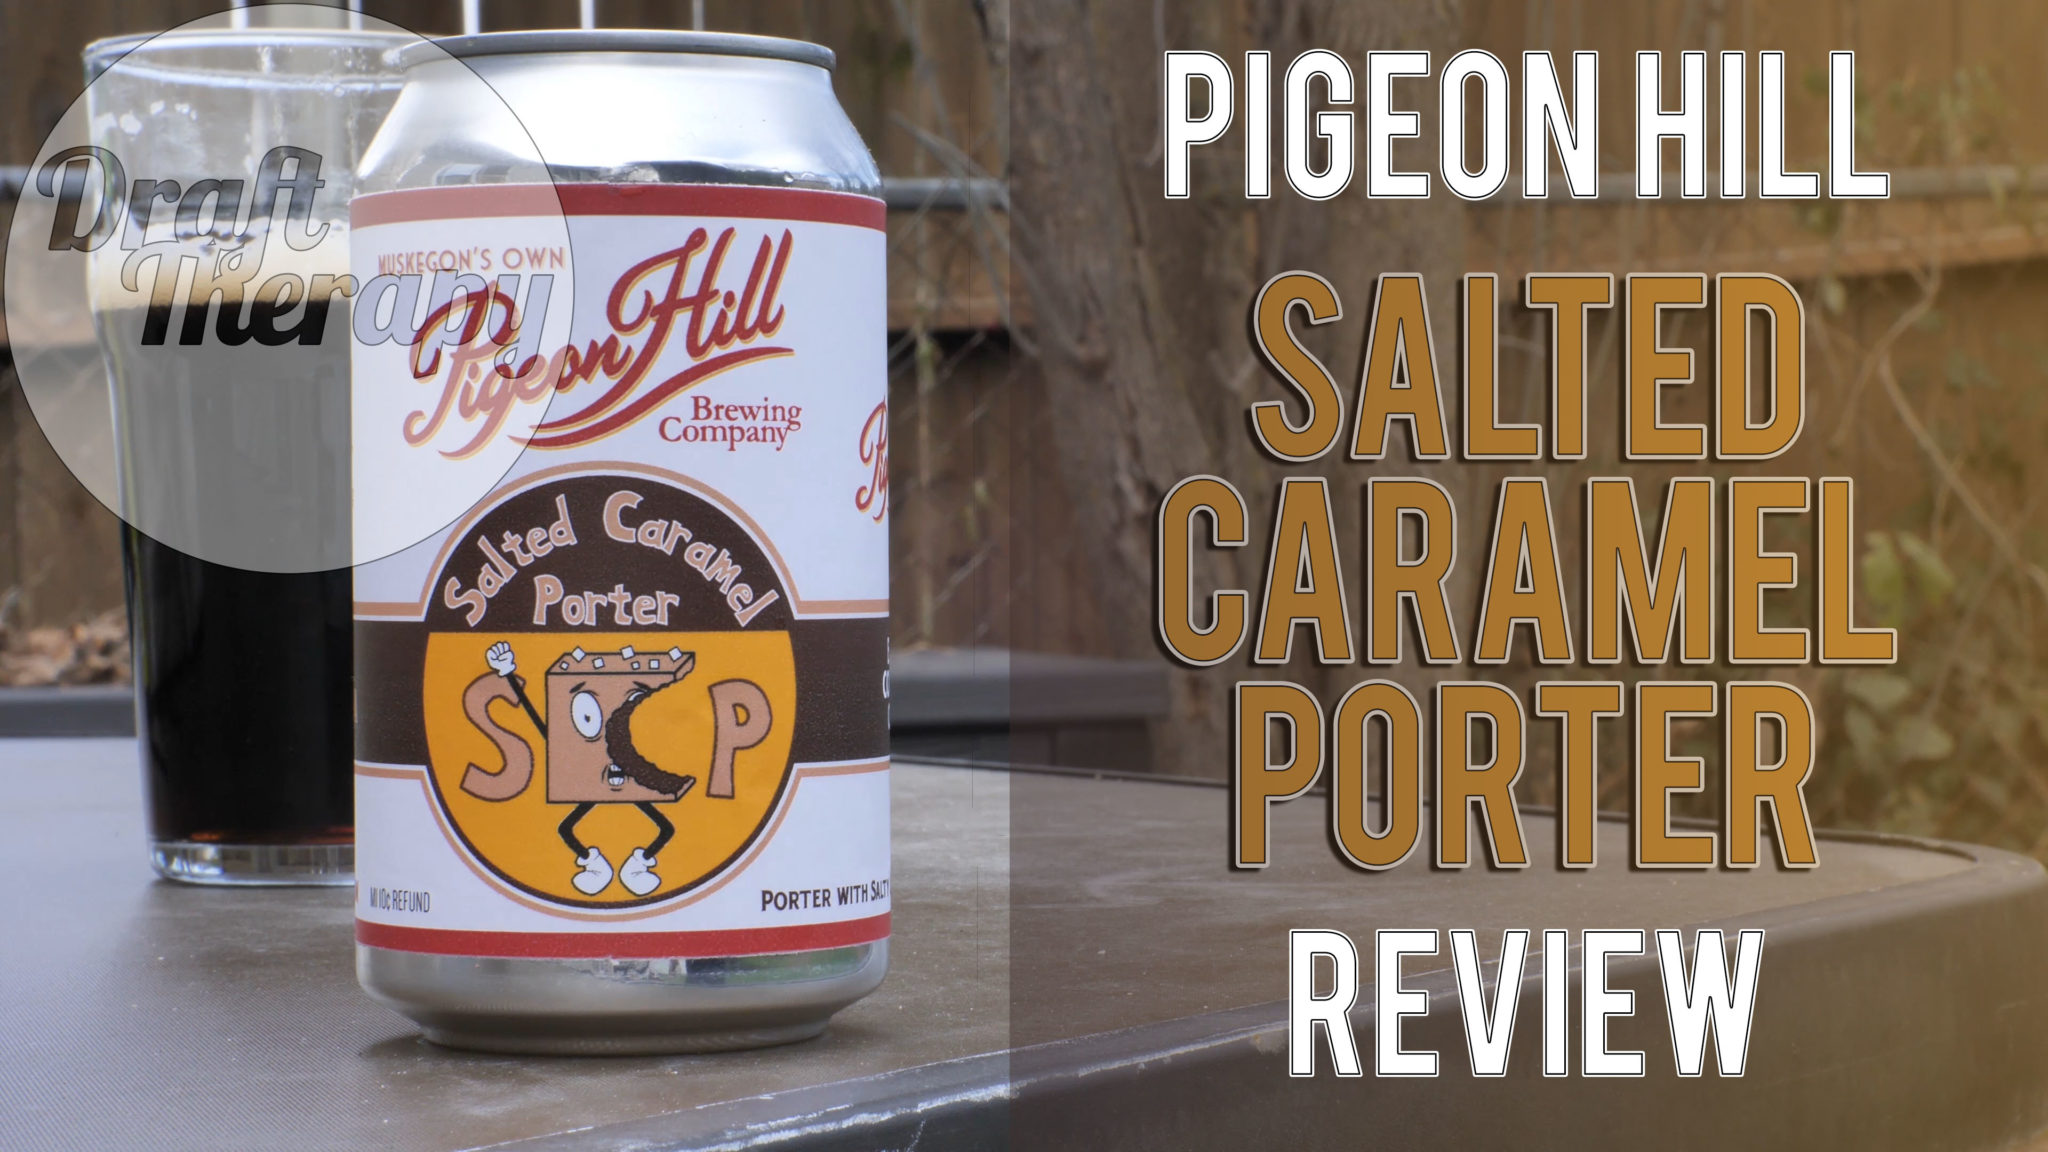 Pigeon Hill – Salted Caramel Porter Review